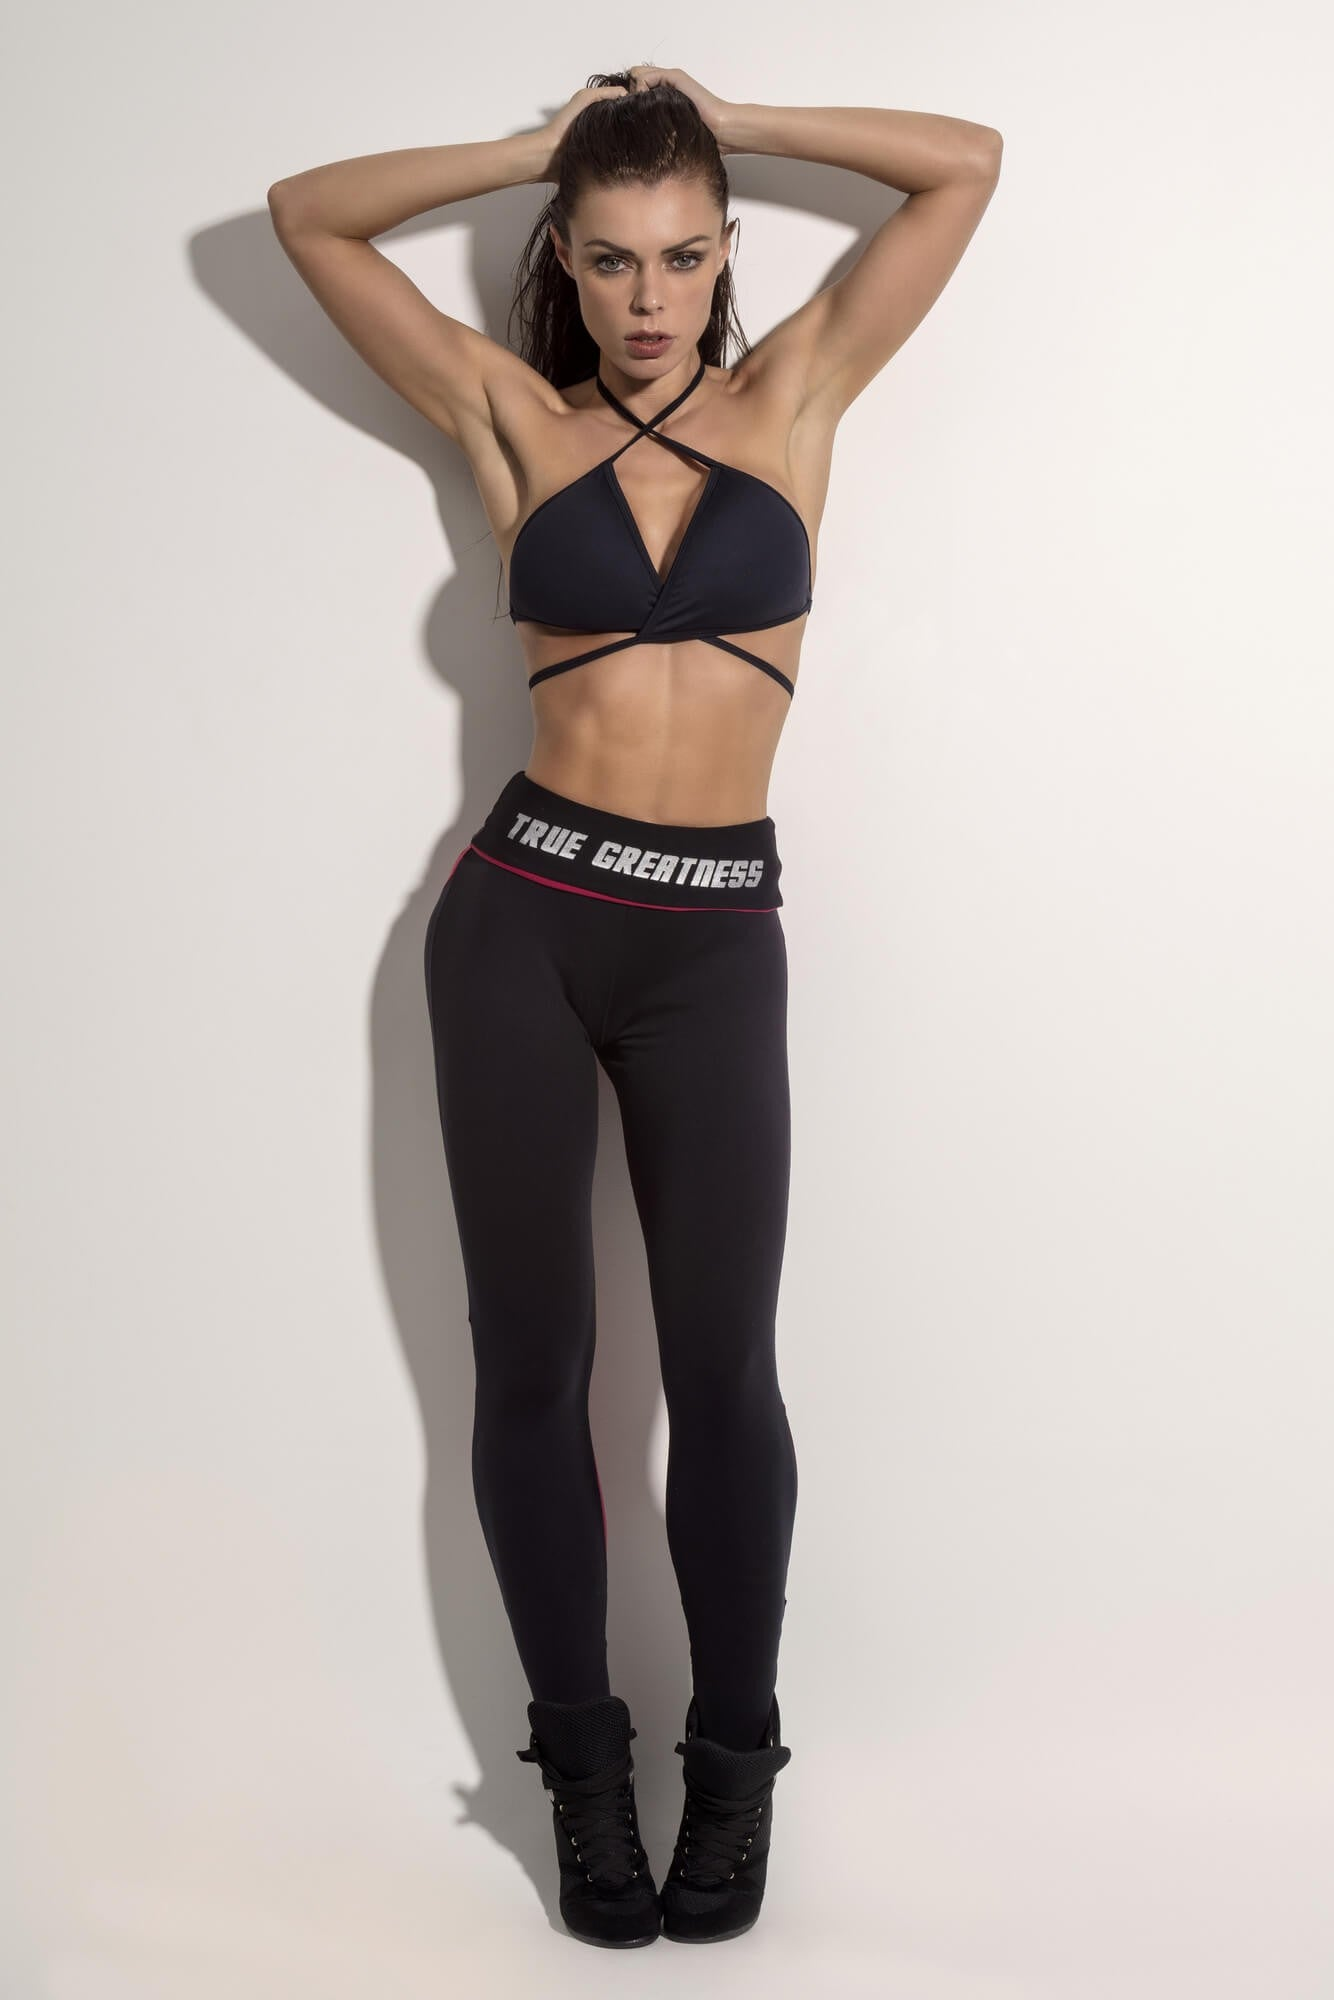 SUPERHOT TRUE GREATNESS LEGGING - SUPERHOT - FitZee